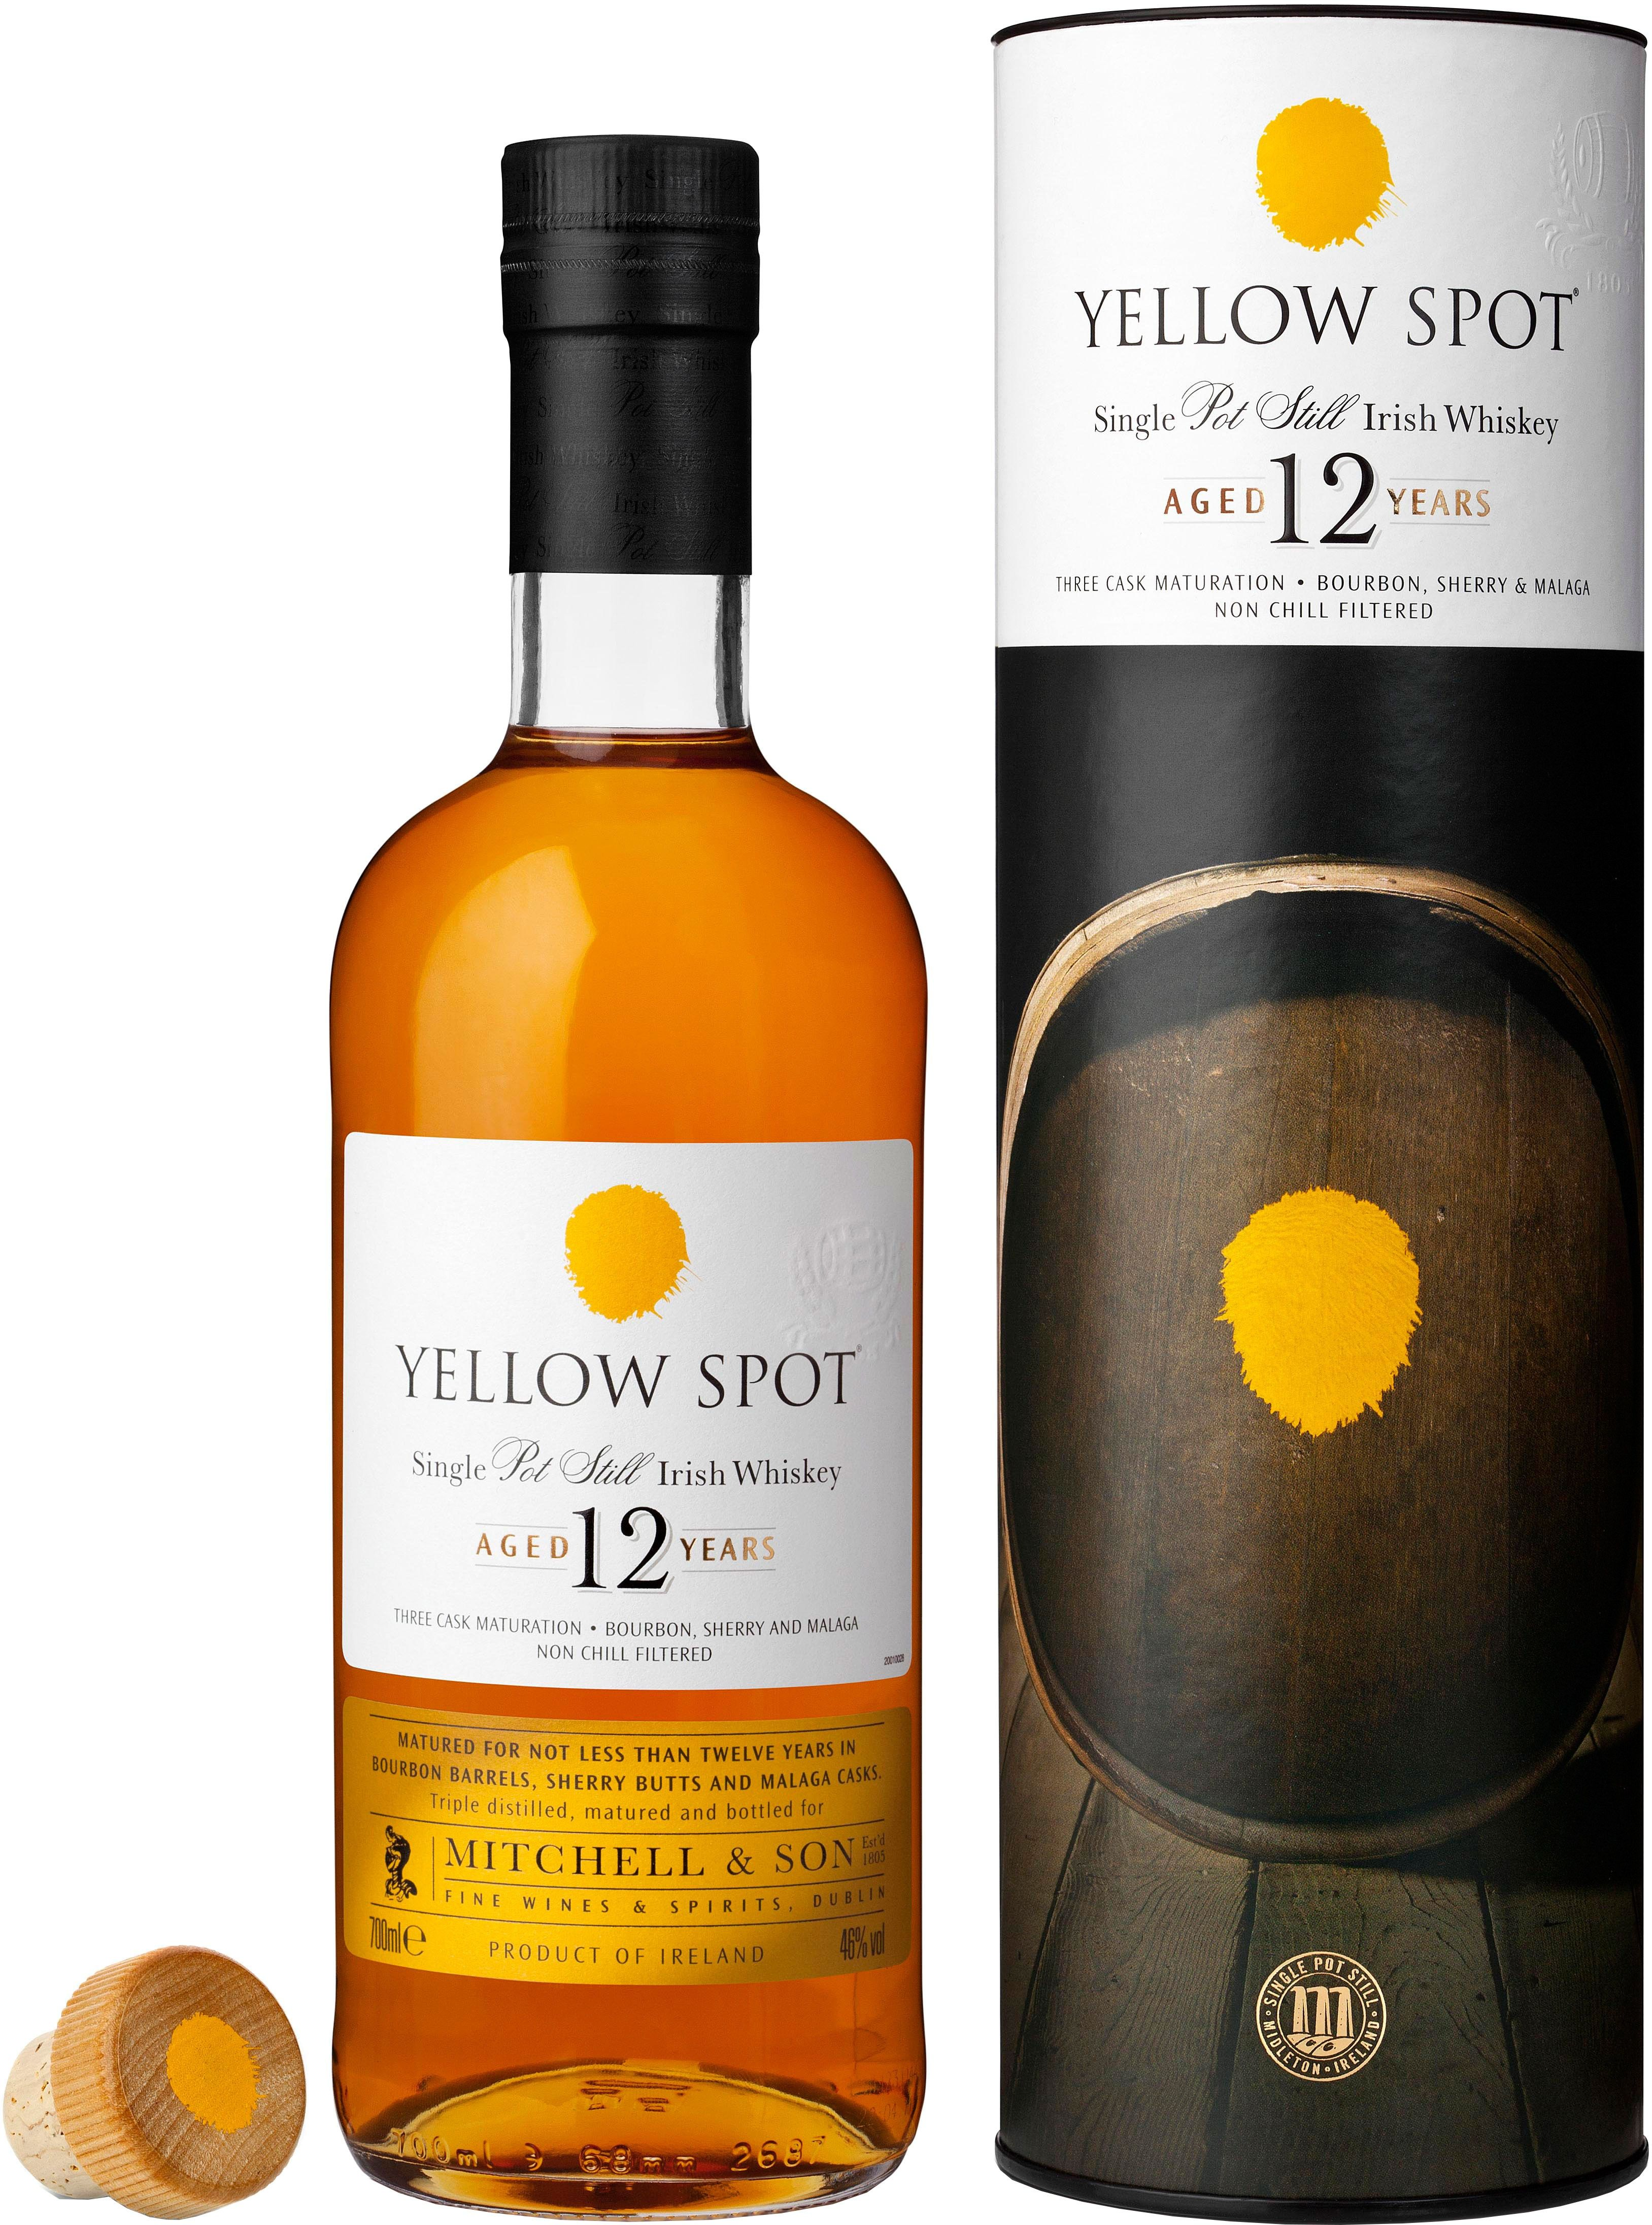 Yellow Spot 12 Year Old Single Pot Still Irish Whiskey. This bonded, single pot still Irish #whiskey is aged for twelve years and is one of the most eagerly-anticipated releases of 2015. | @Caskers